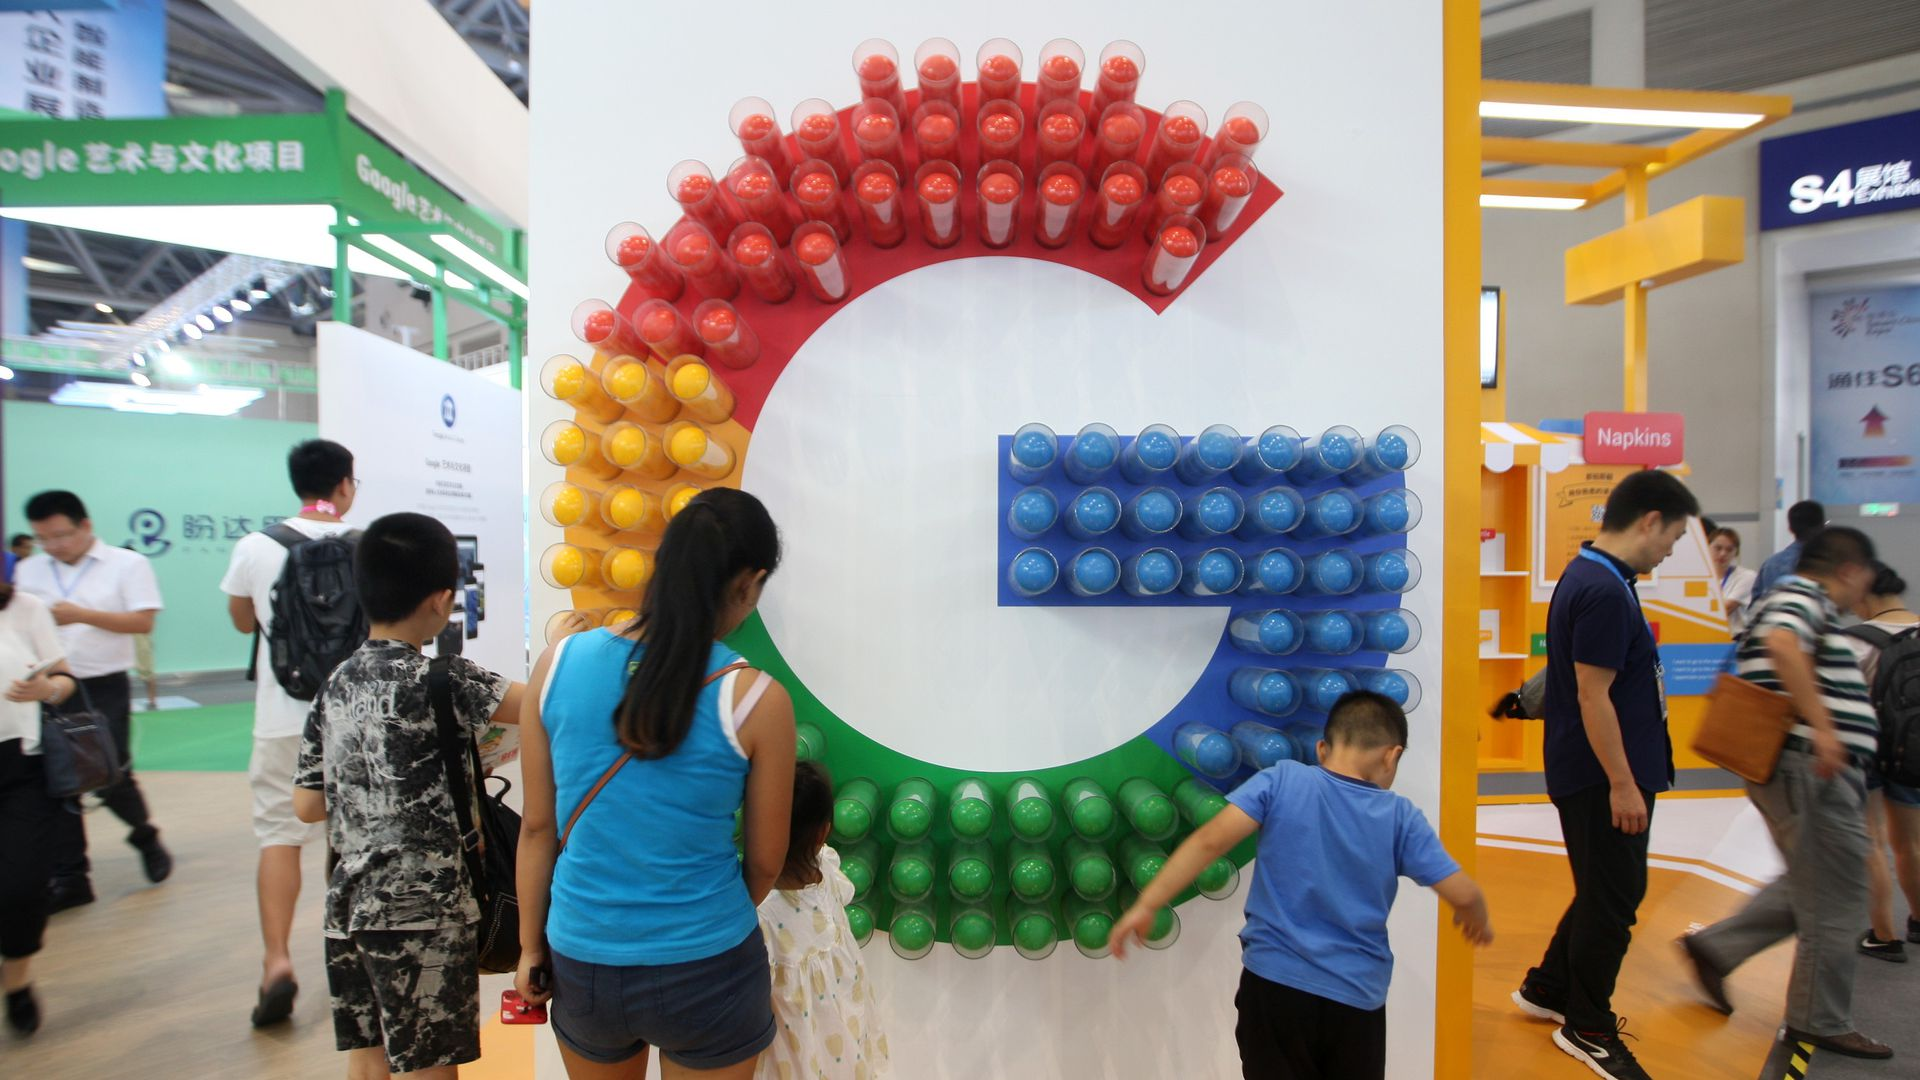 Red, yellow, green, and blue G symbolizing Google on a wall as people look on.